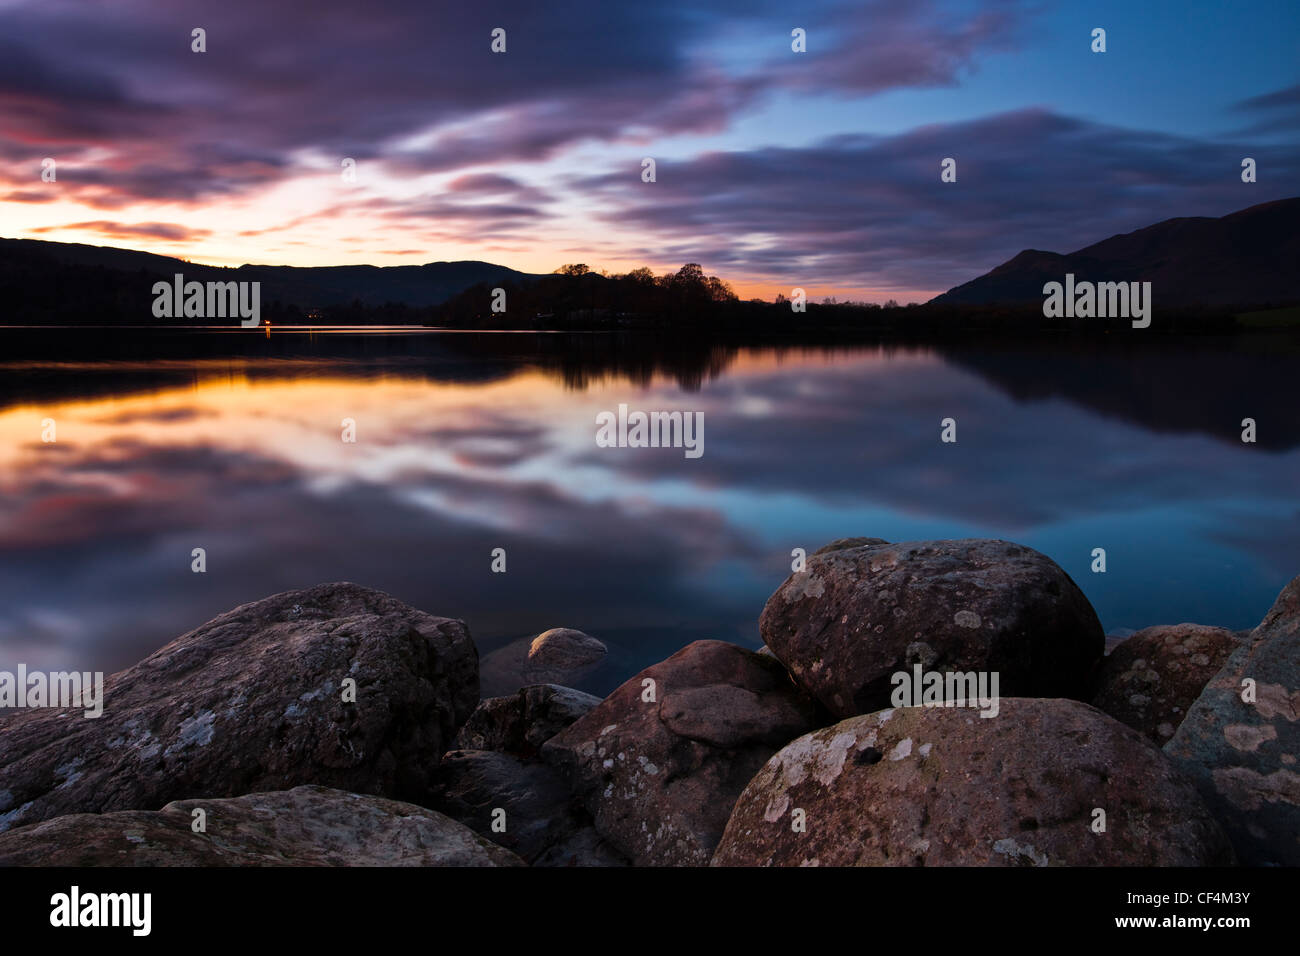 A view over rounded rocks on the shore of Derwentwater at sunset. - Stock Image